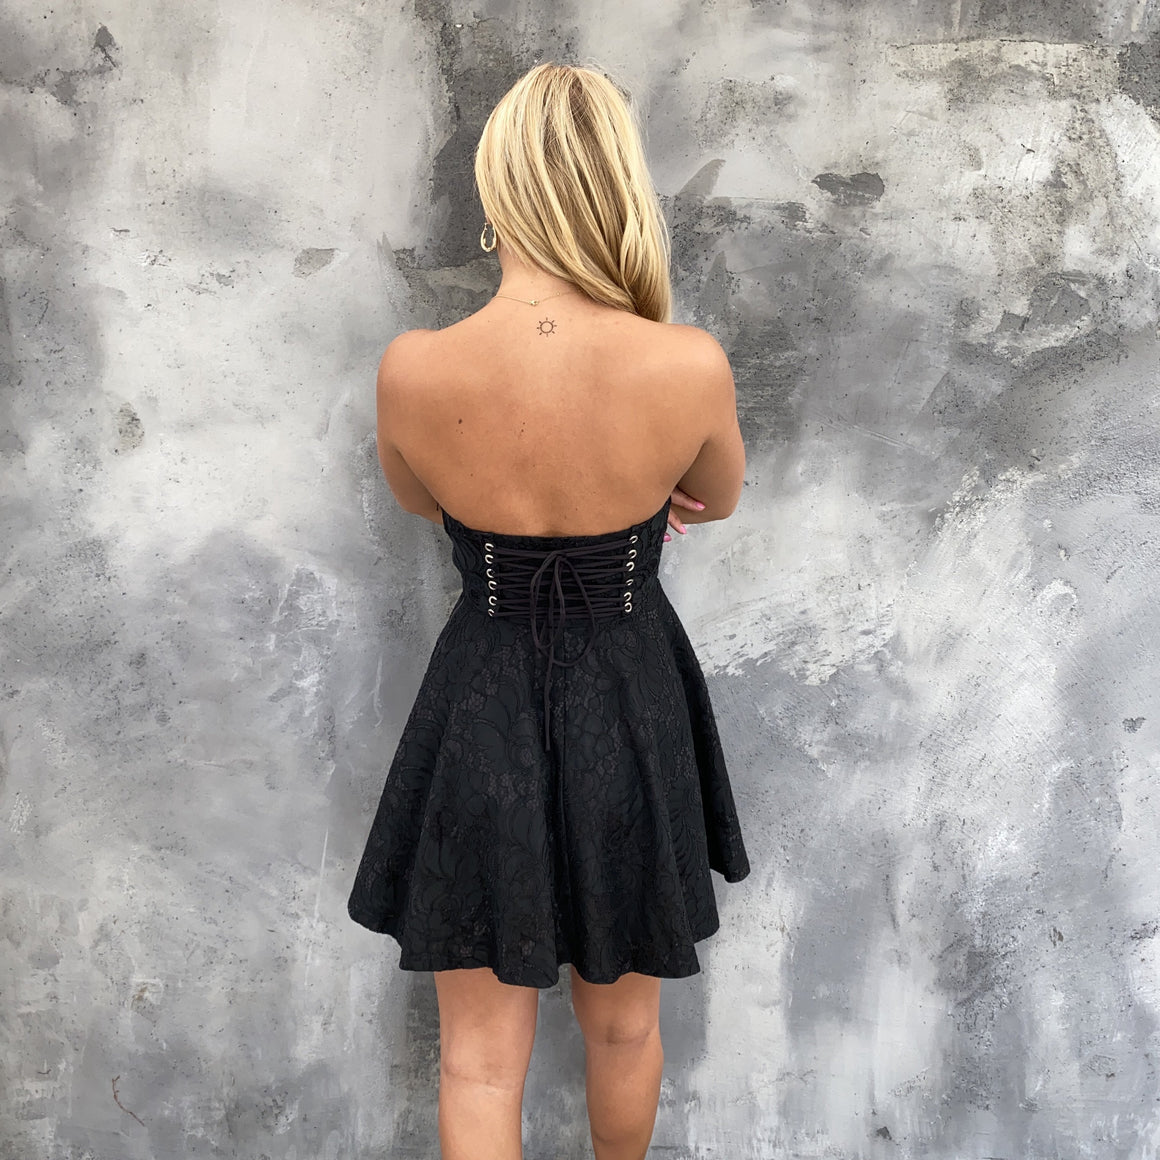 At Your Own Lace LBD